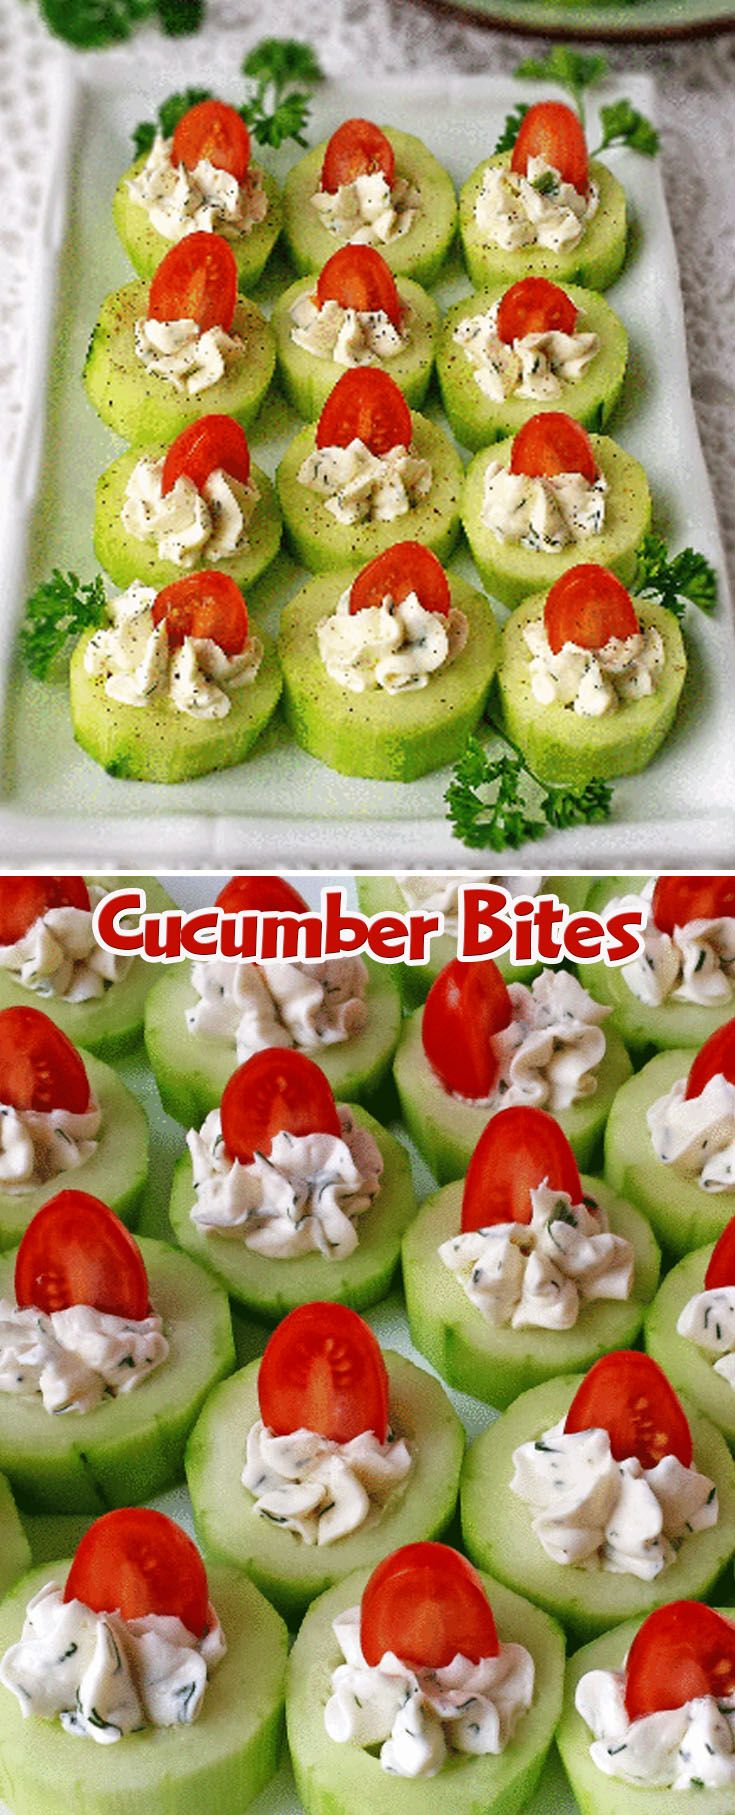 Healthy Christmas Appetizers Pinterest Cucumber Bites Beaufood Pinterest Cucumber Bites